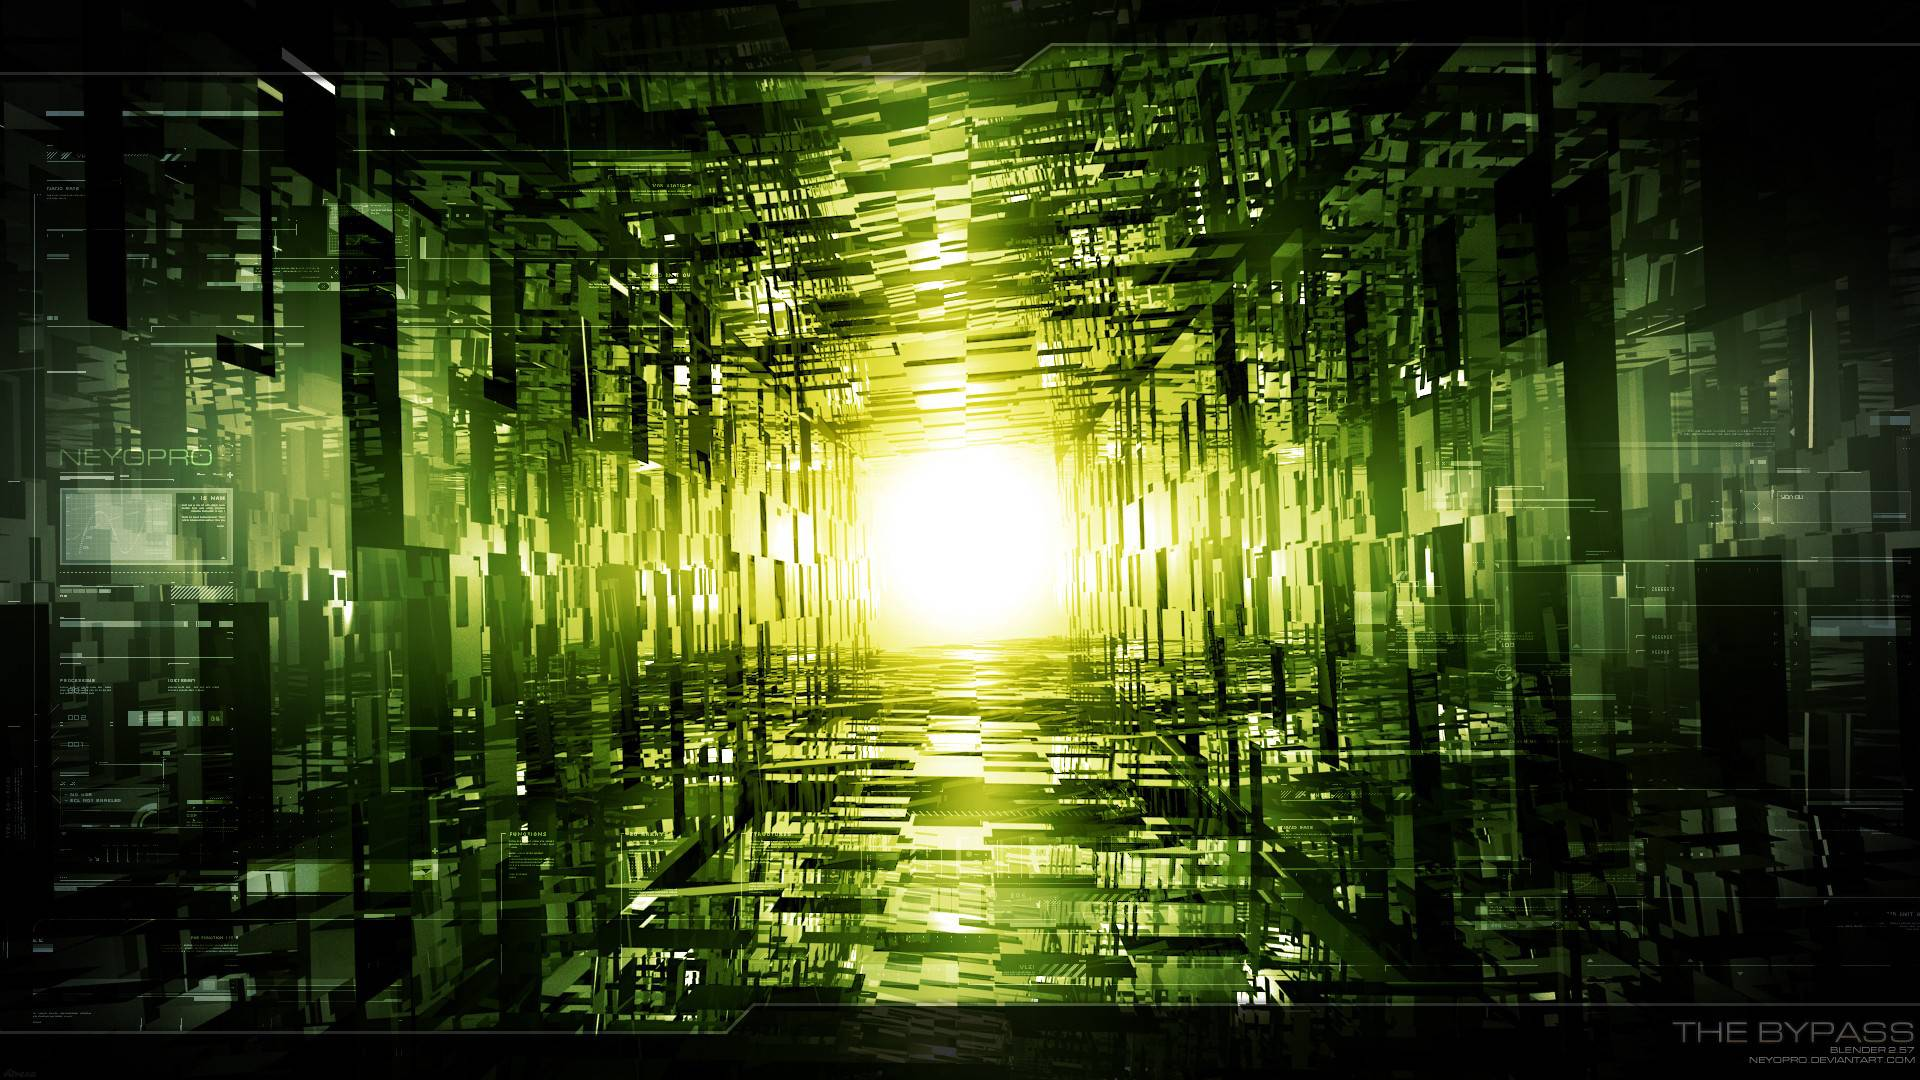 abstract wallpapers wallpaper hqpictures - photo #29